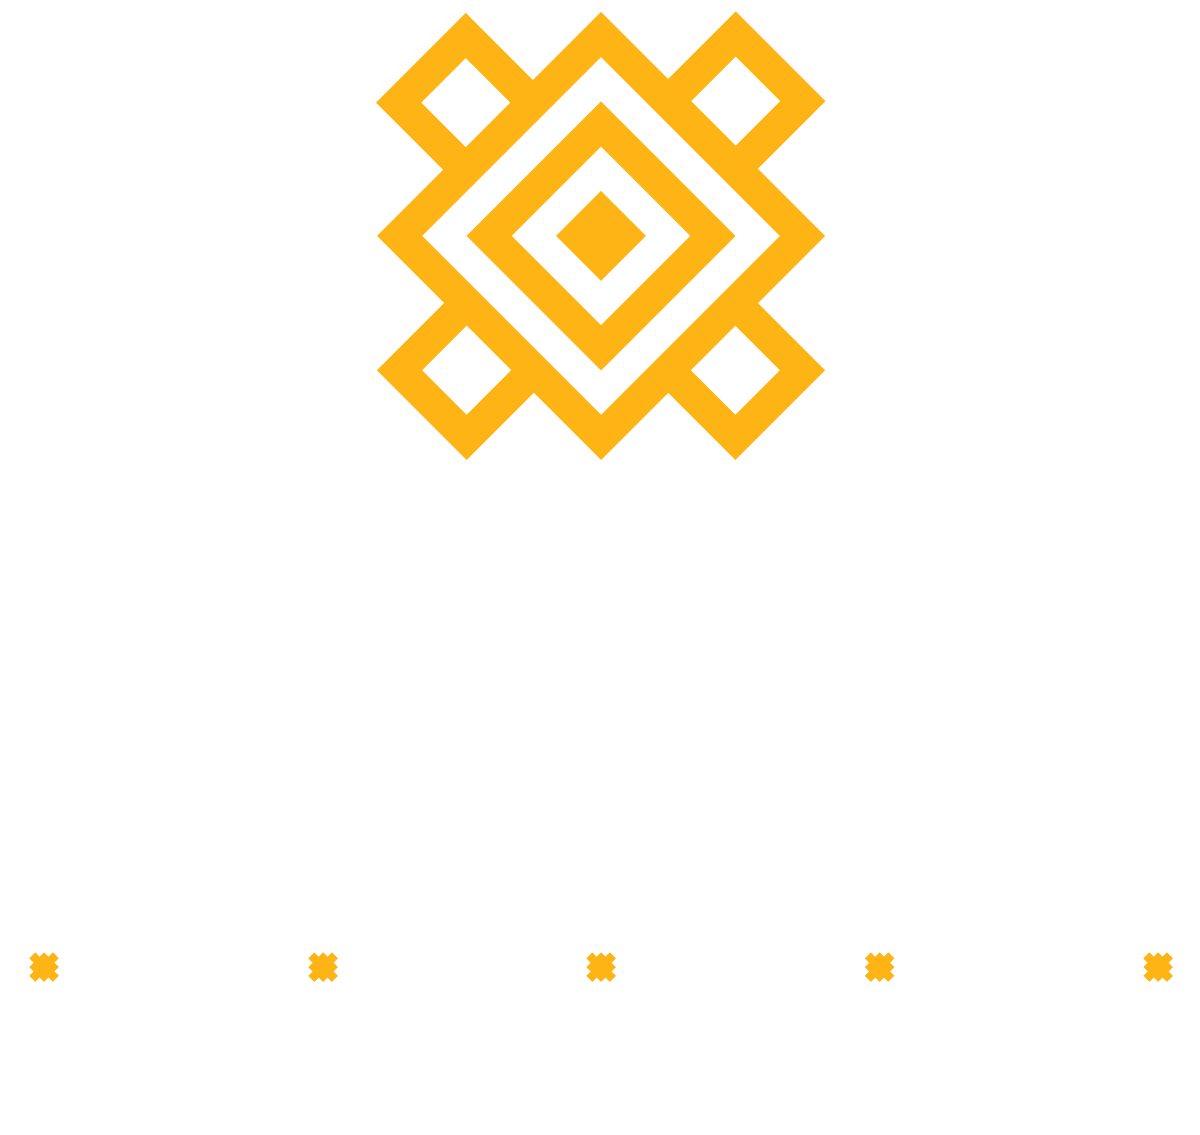 La Zona - Fort Worth's Pizza & Tapas Restaurant